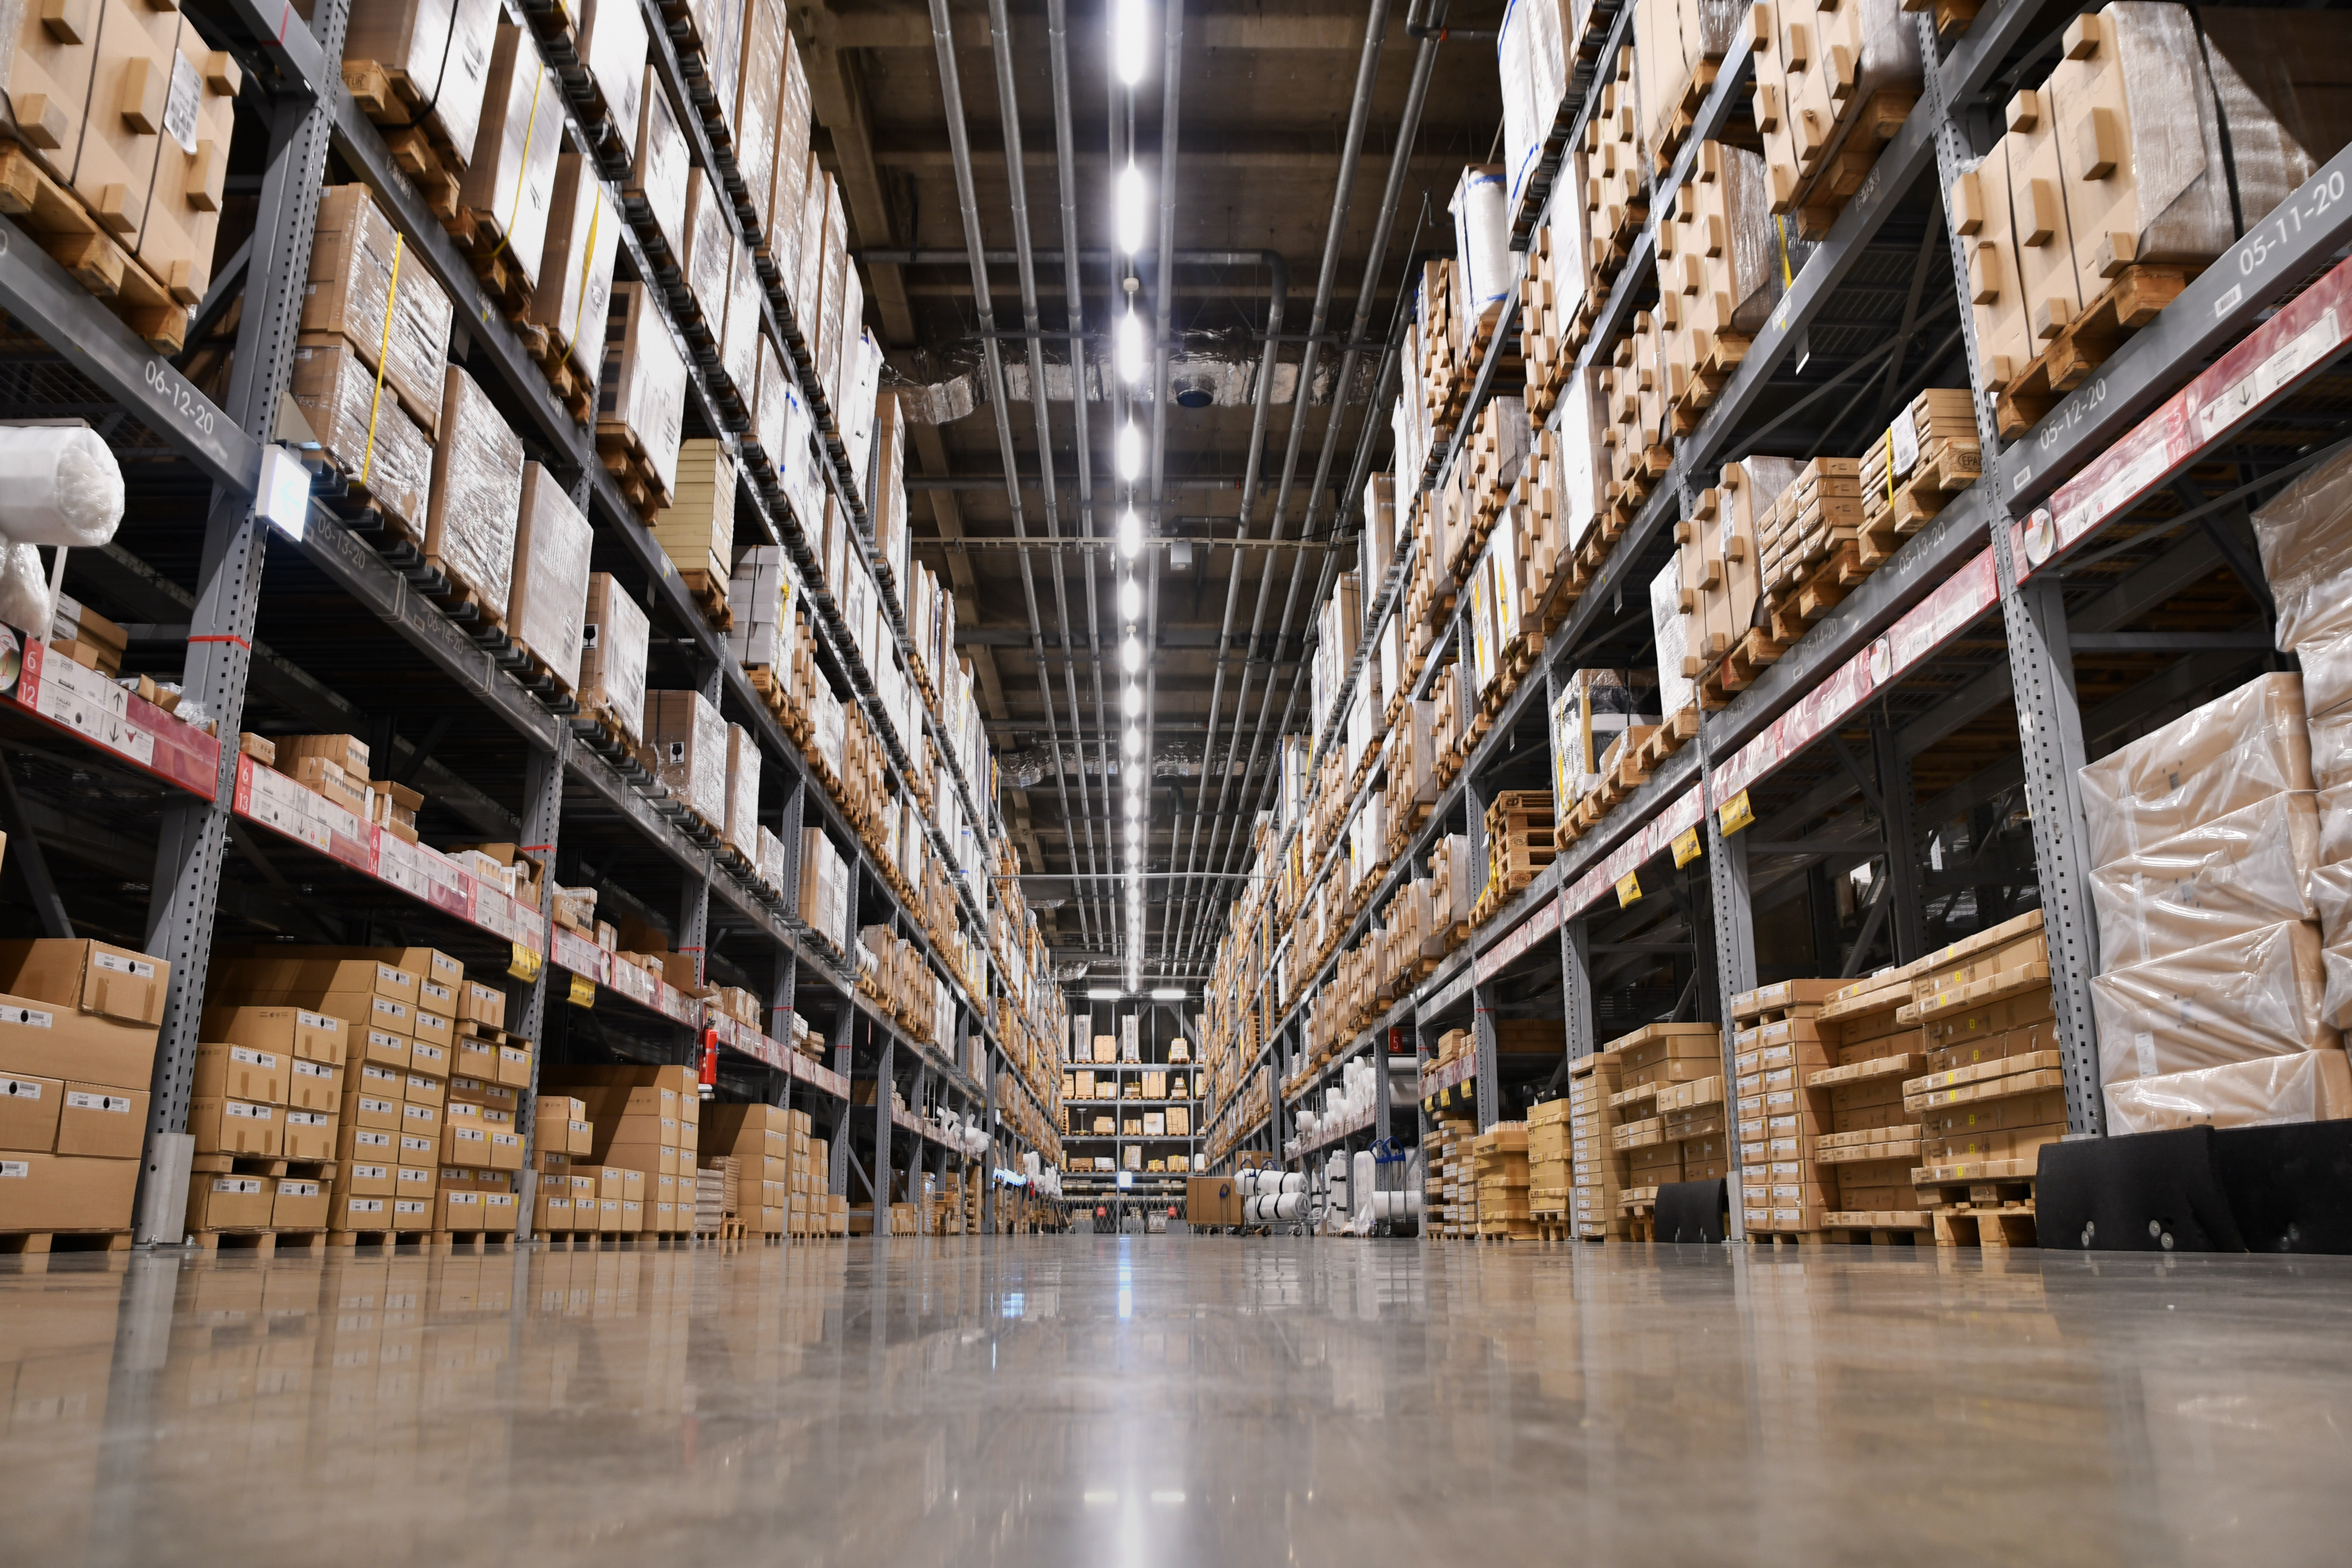 Gap accelerated the adoption of robots at its facilities throughout the U.S. to reduce warehouse employees' risk of coronavirus exposure.